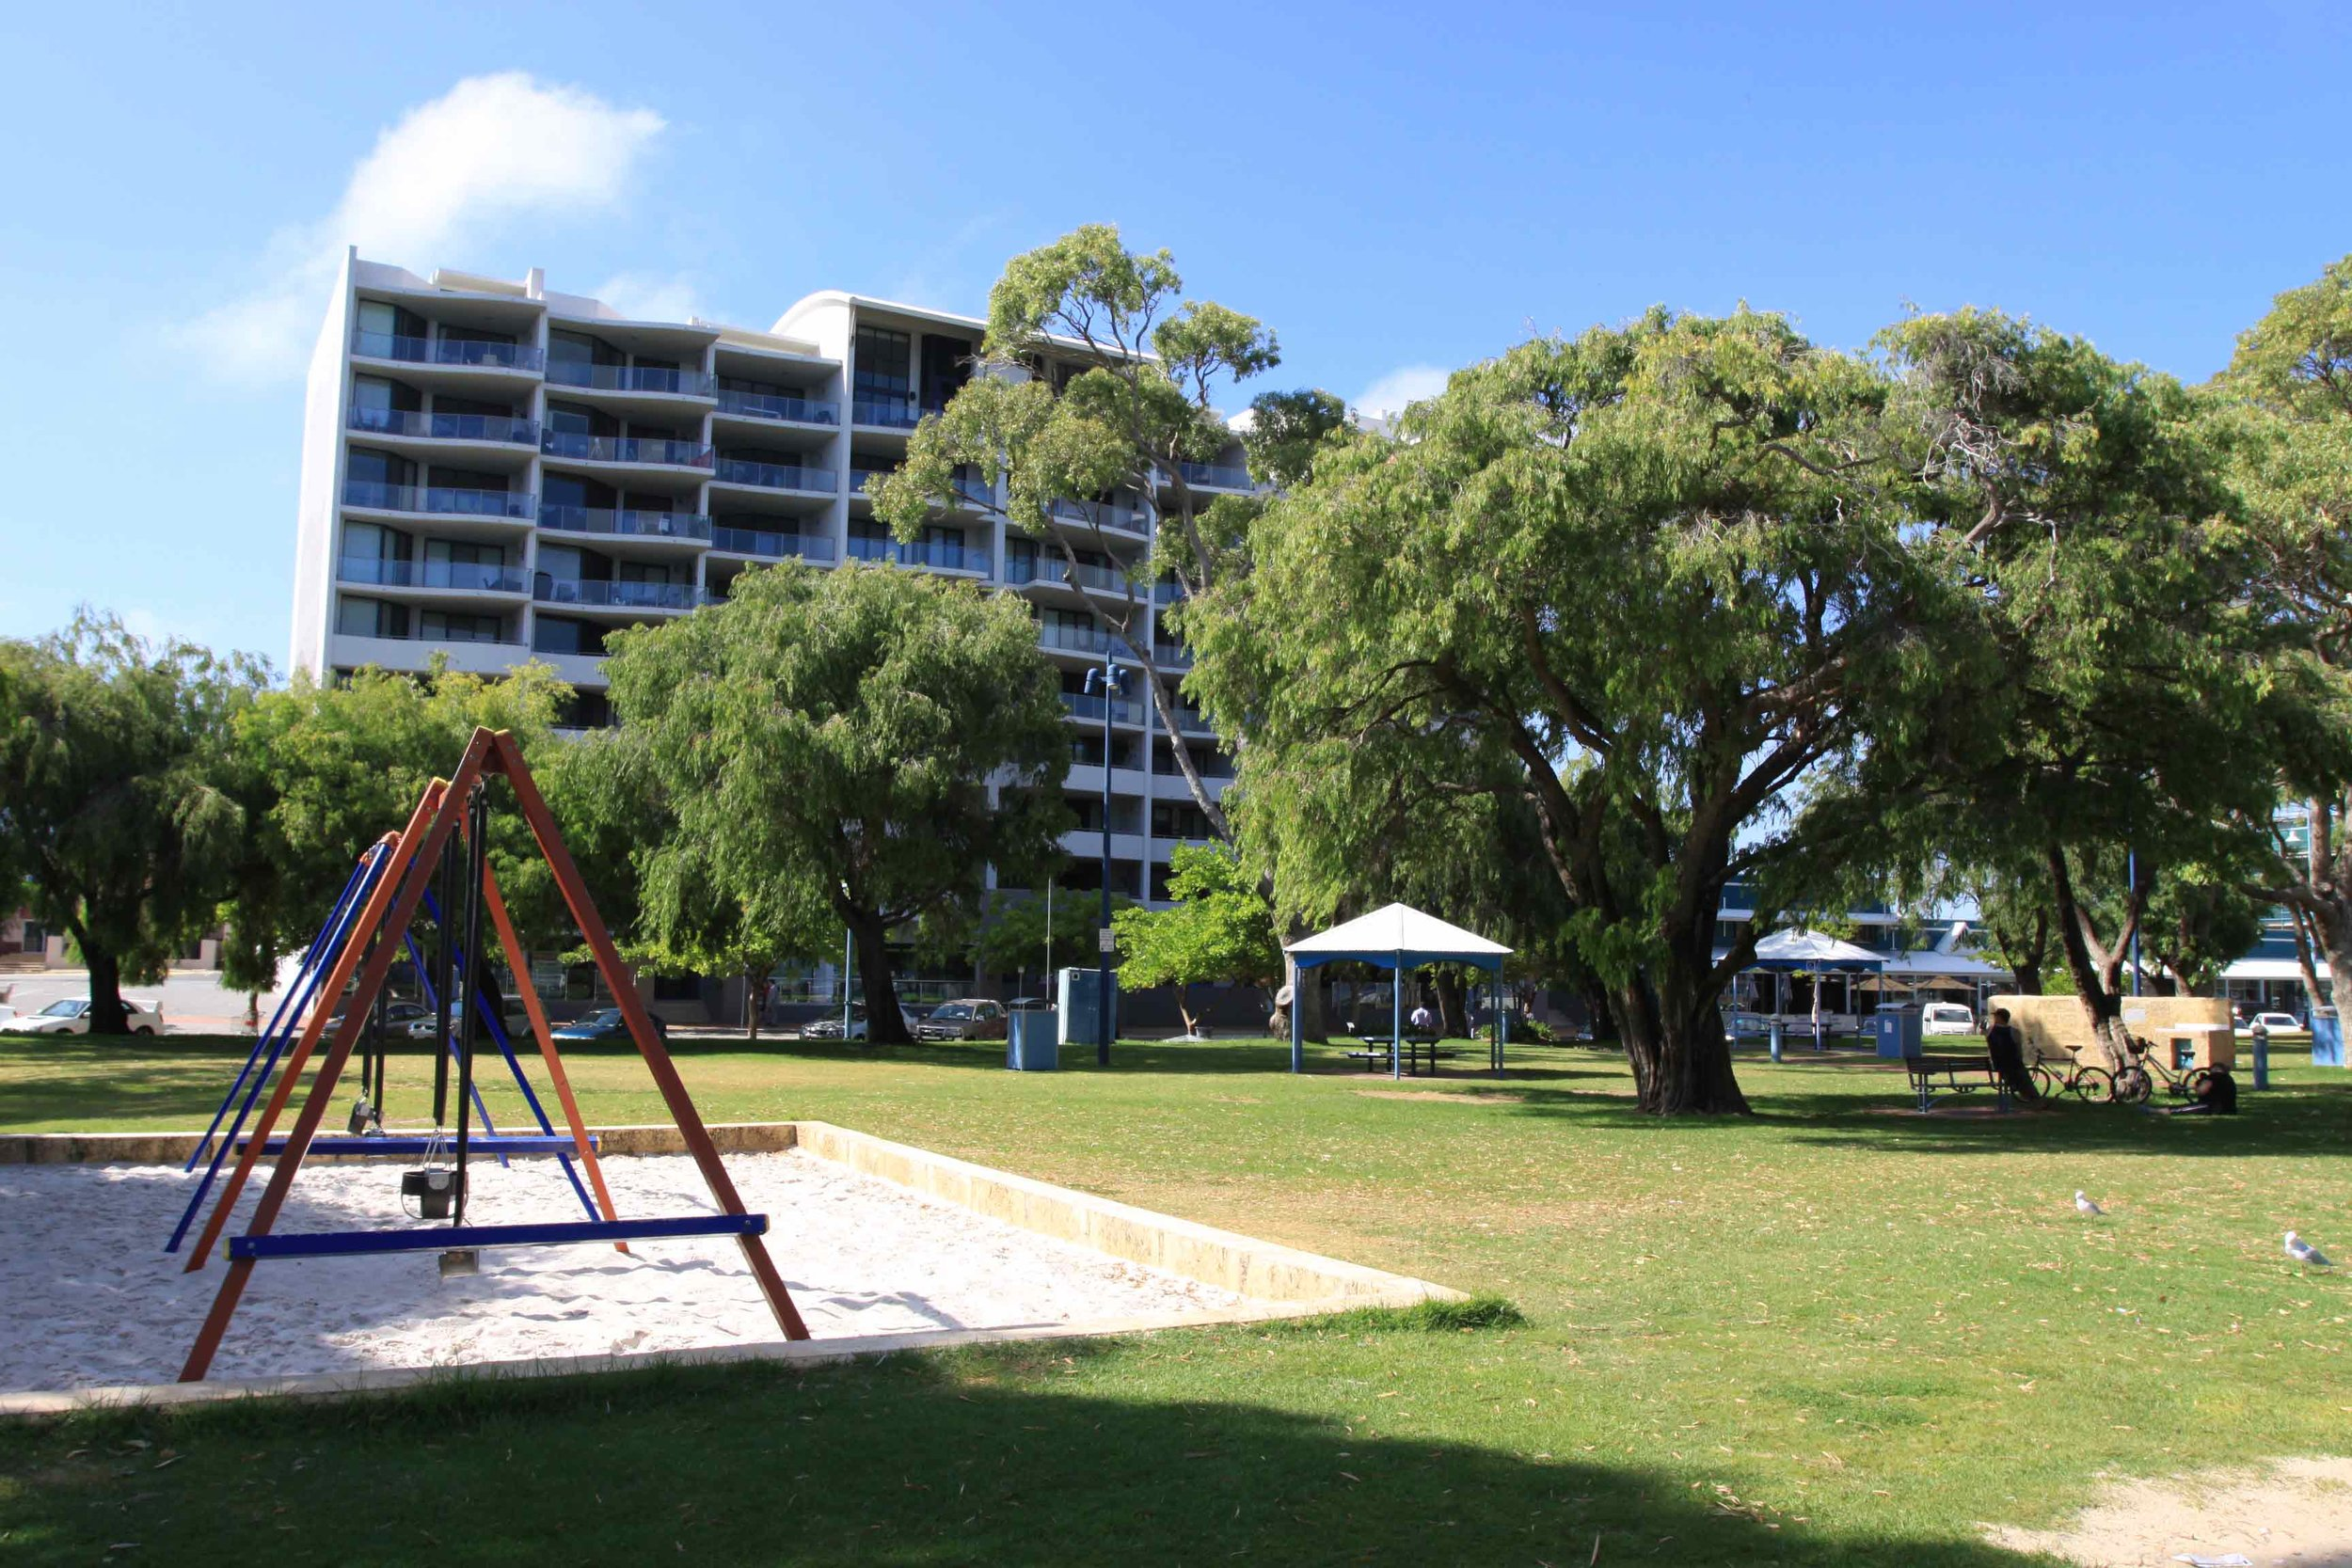 Plate 4: Multi-story apartments adjacent to the Rockingham Beach Foreshore